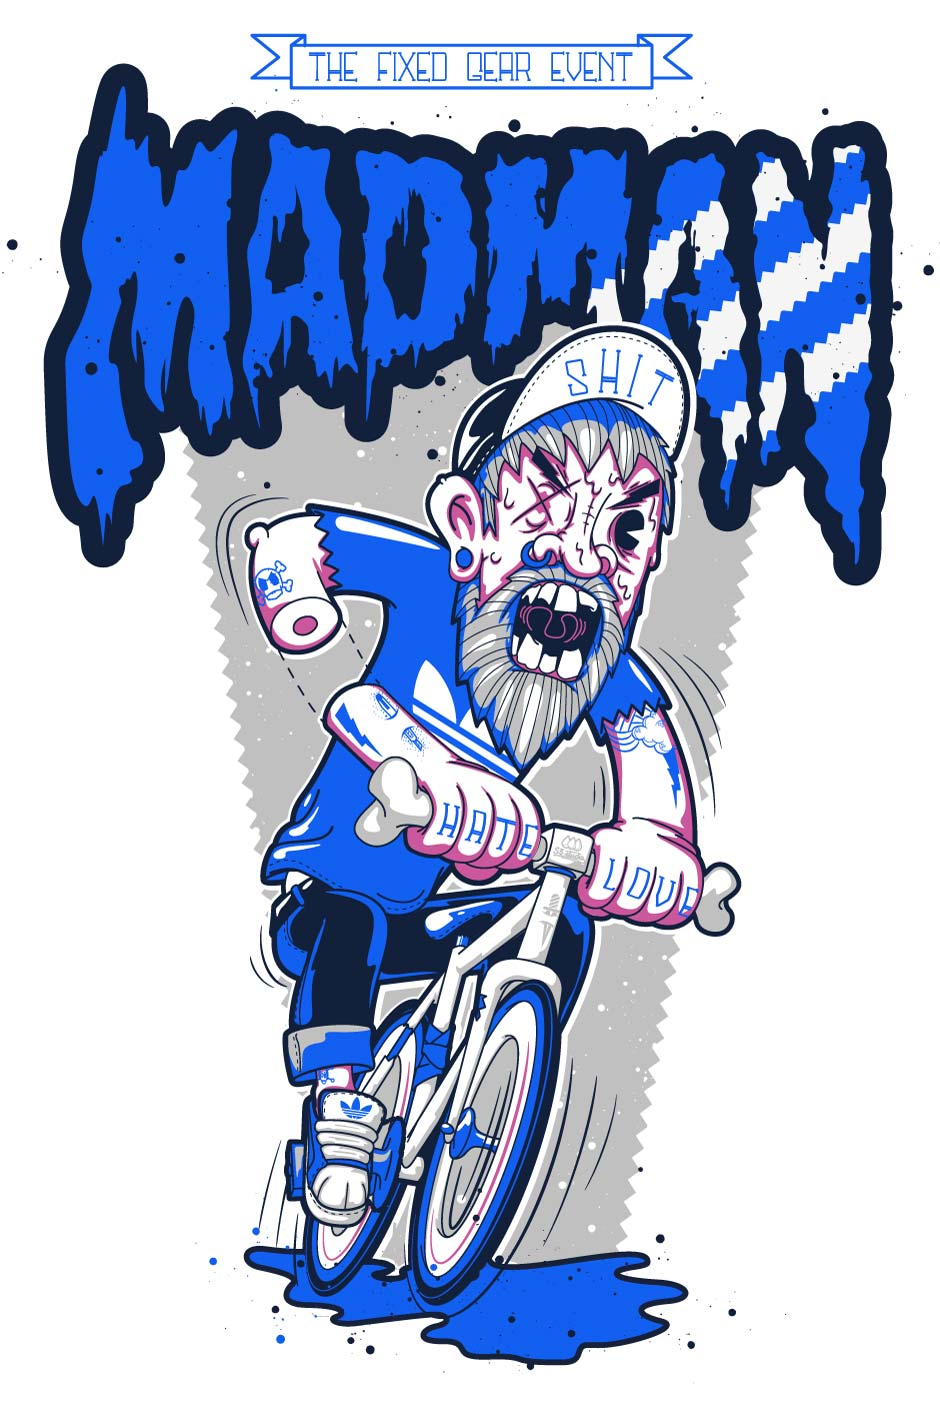 illustration, fixgear, vector, art, character